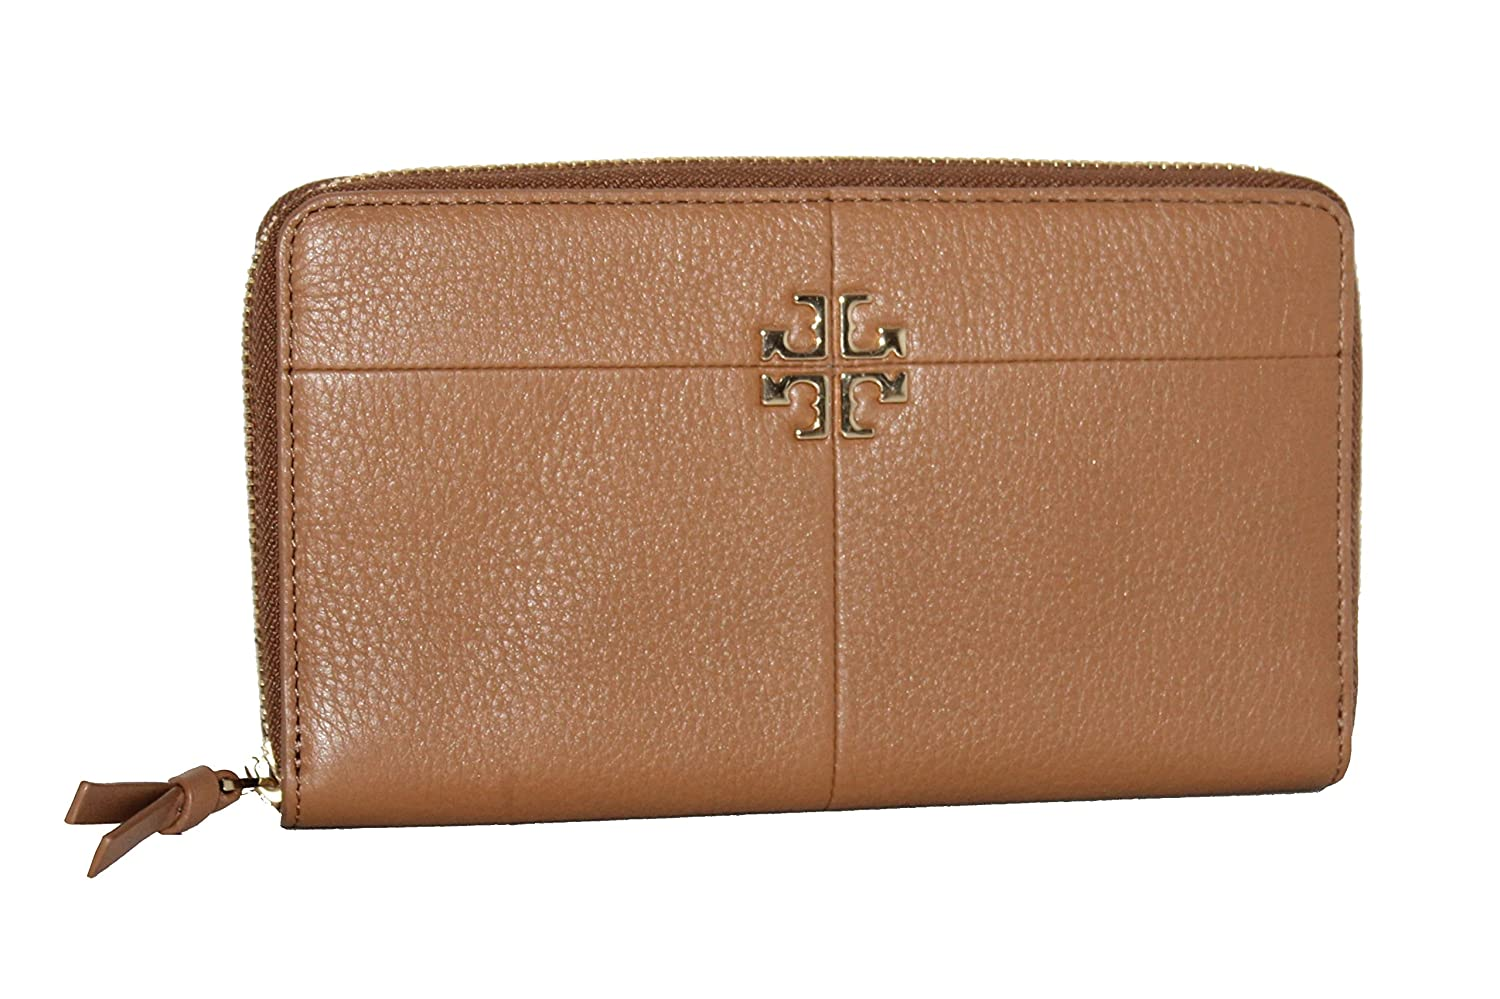 fde89382ceaf Amazon.com  Tory Burch Ivy Zip Continental Leather Women s Wallet  44732 BARK  Clothing